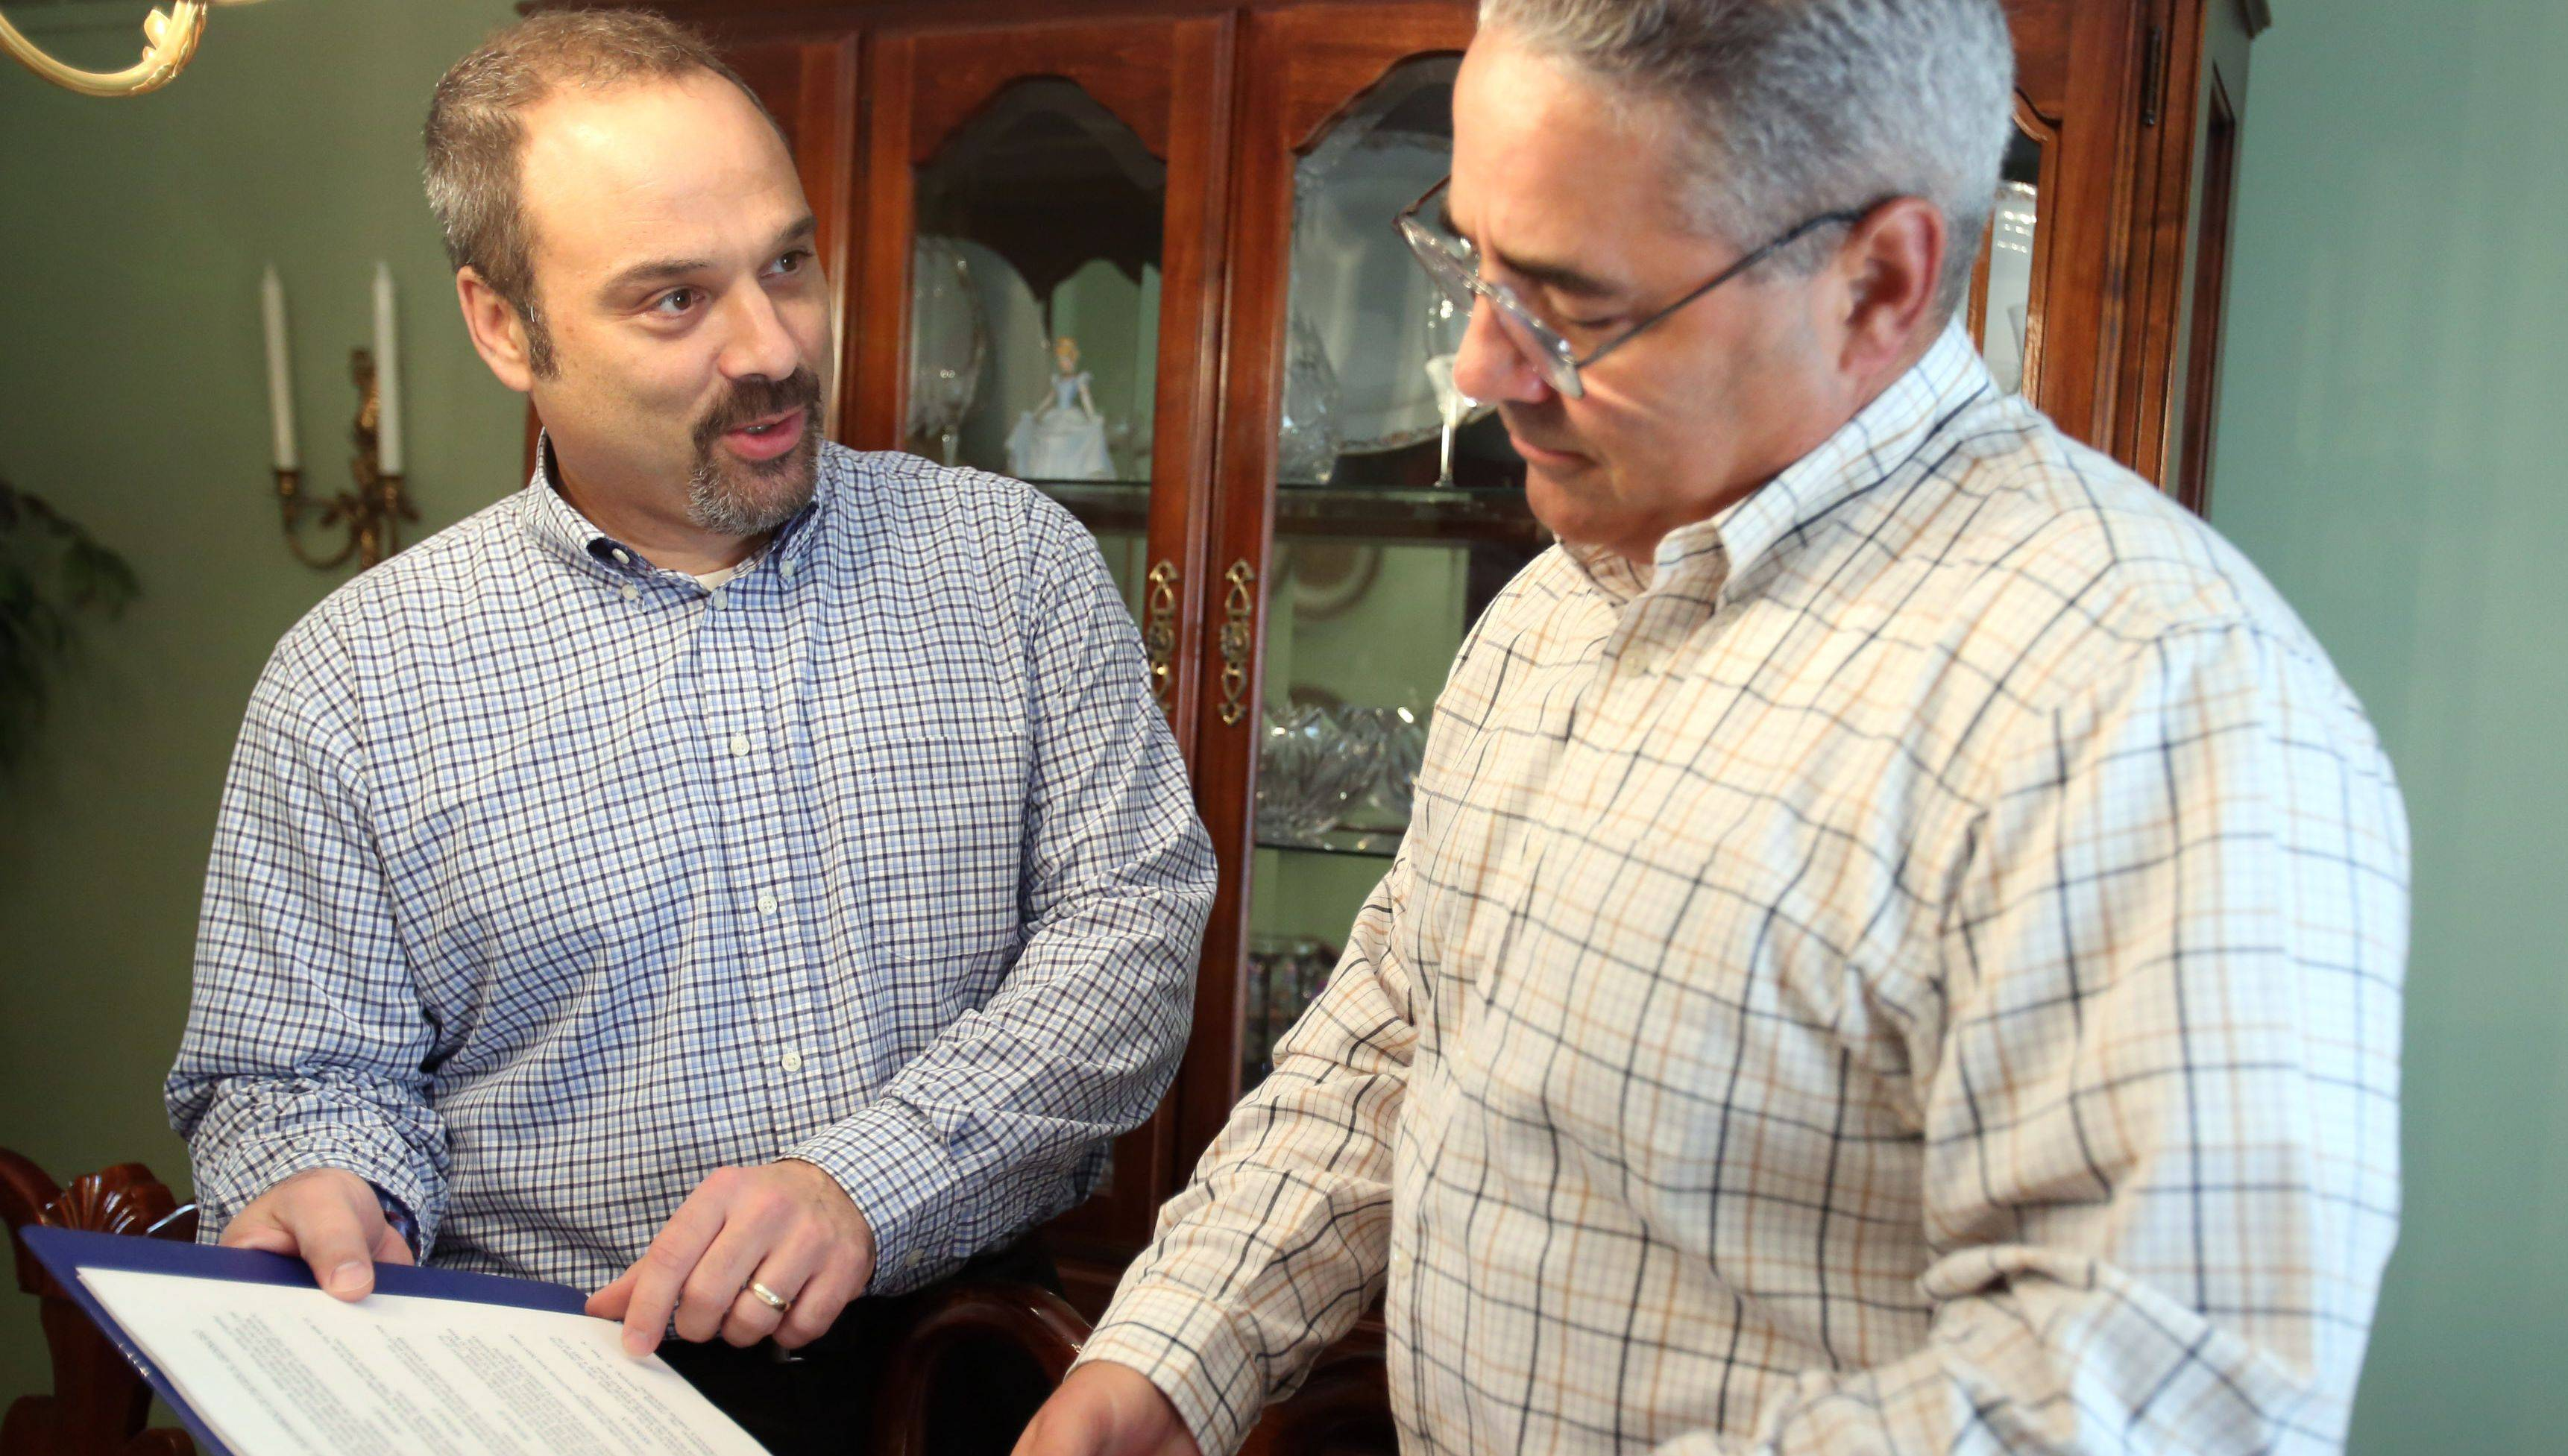 Paul Gennuso, left, a lawyer and partner of Gennuso Financial Group, reviews plans with his brother Peter.